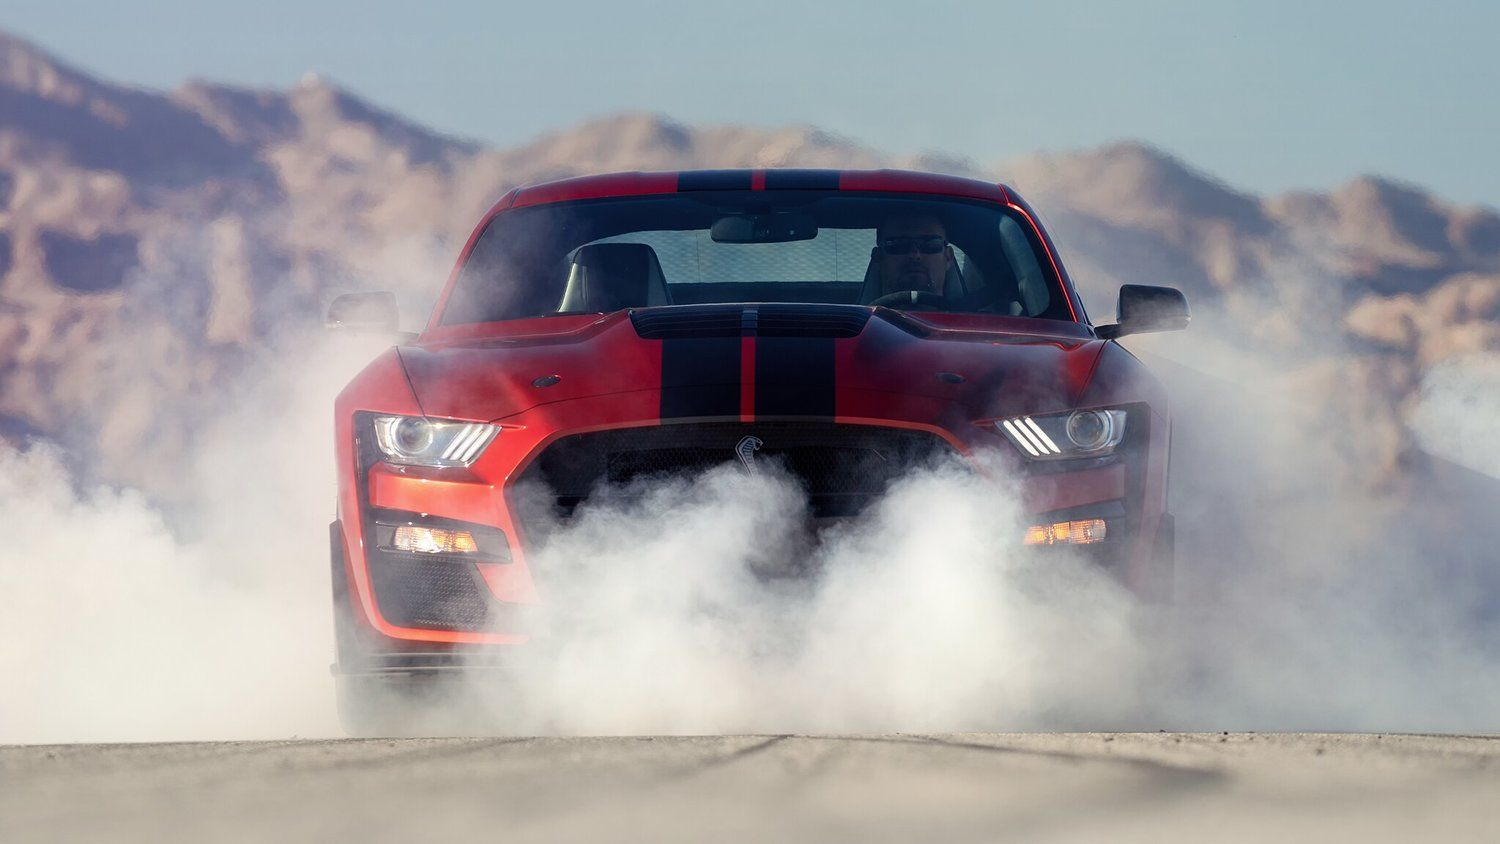 2020 Ford Mustang Shelby Gt500 Lays Down 10 614 Second Quarter